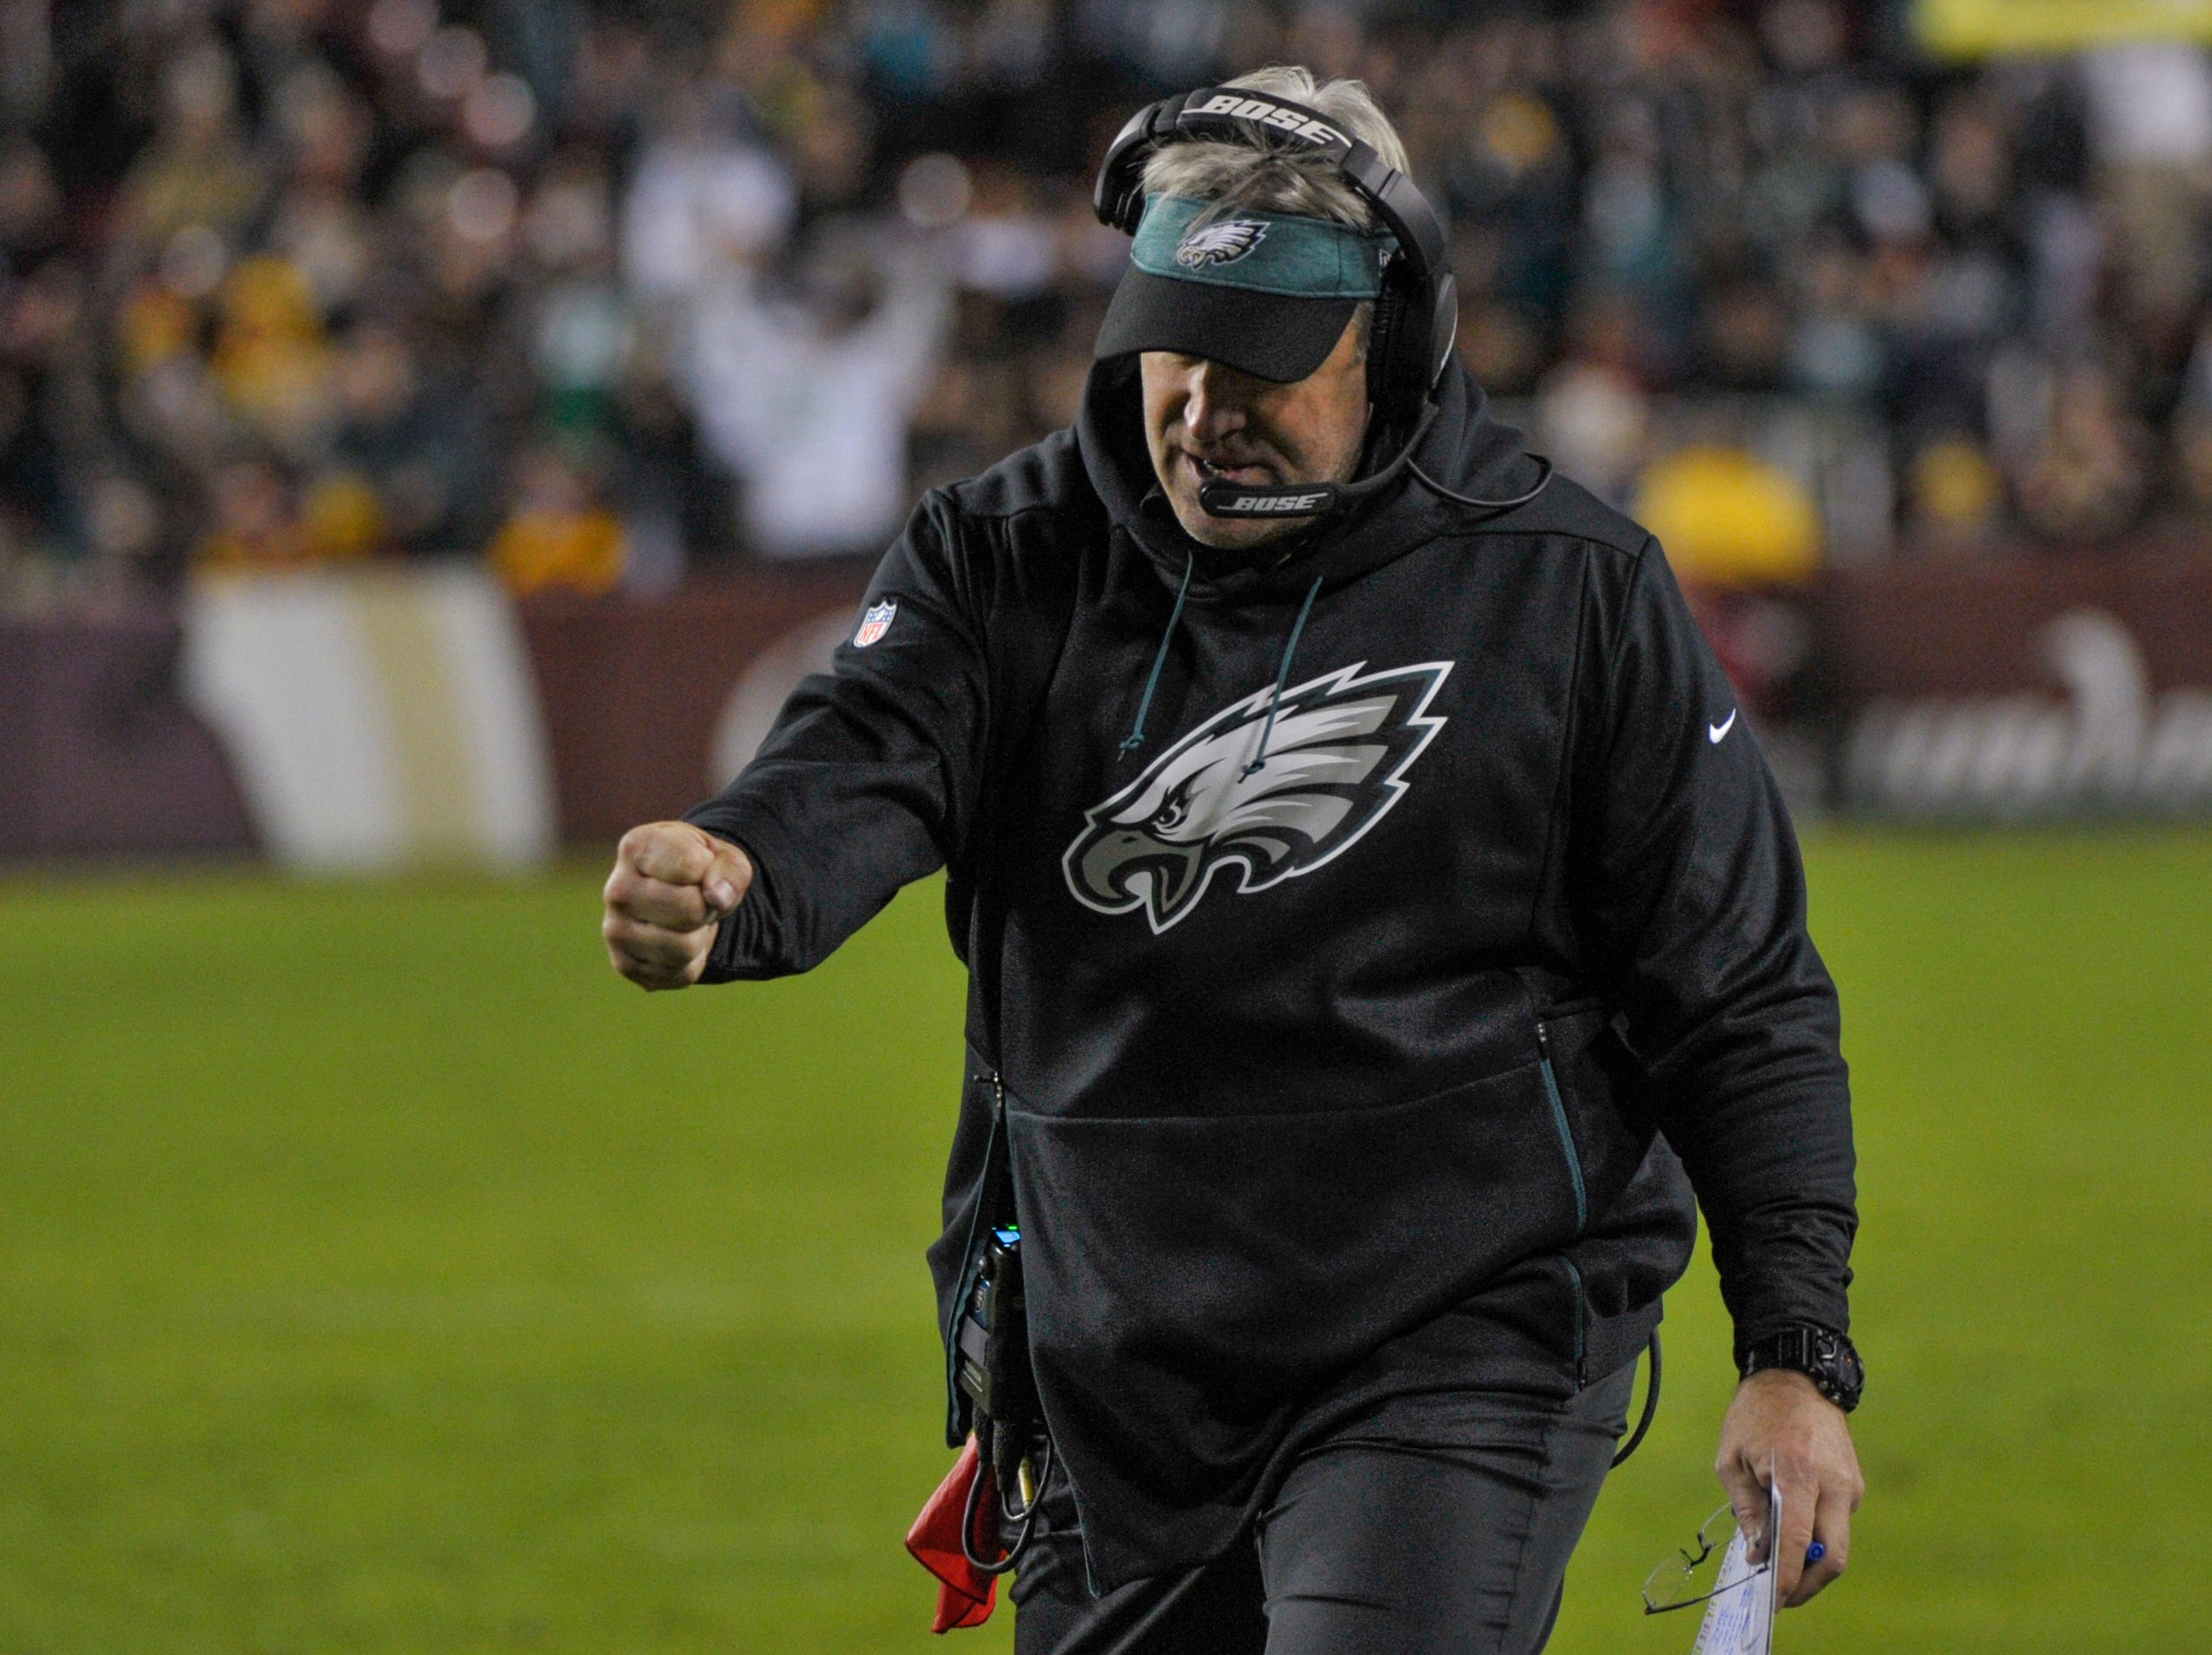 Philadelphia Eagles head coach Doug Pederson reacts to the offical confirmation of wide receiver Nelson Agholor's touchdown during the second half of the NFL football game against the Washington Redskins, Sunday, Dec. 30, 2018 in Landover, Md. (AP Photo/Mark Tenally)